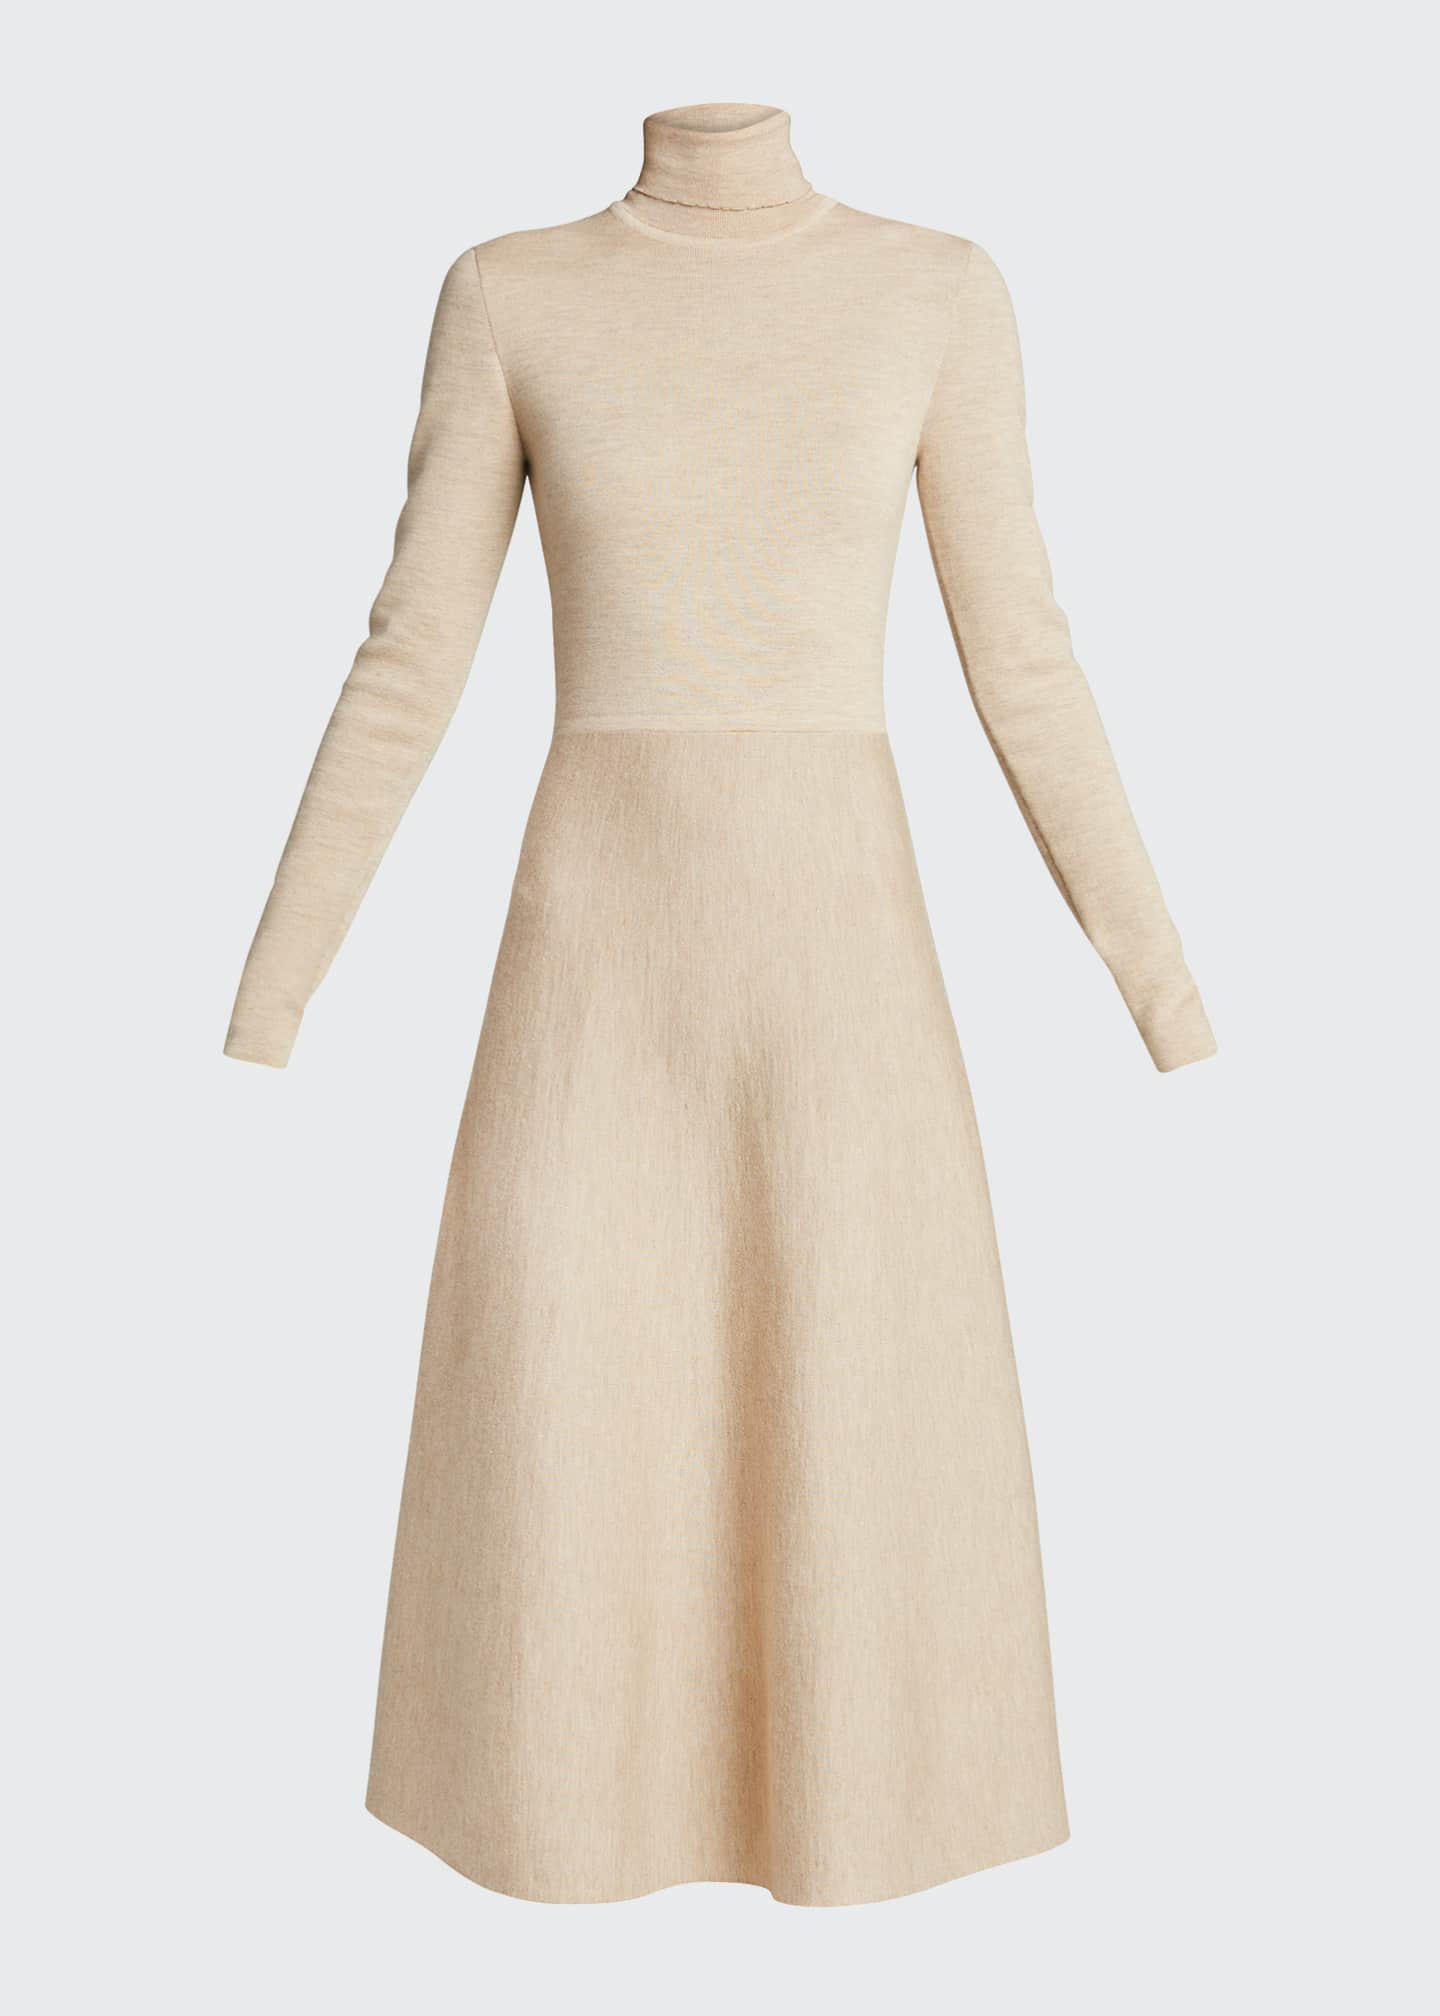 Image 5 of 5: Betti Double-Knit Cashmere/Silk Turtleneck Dress